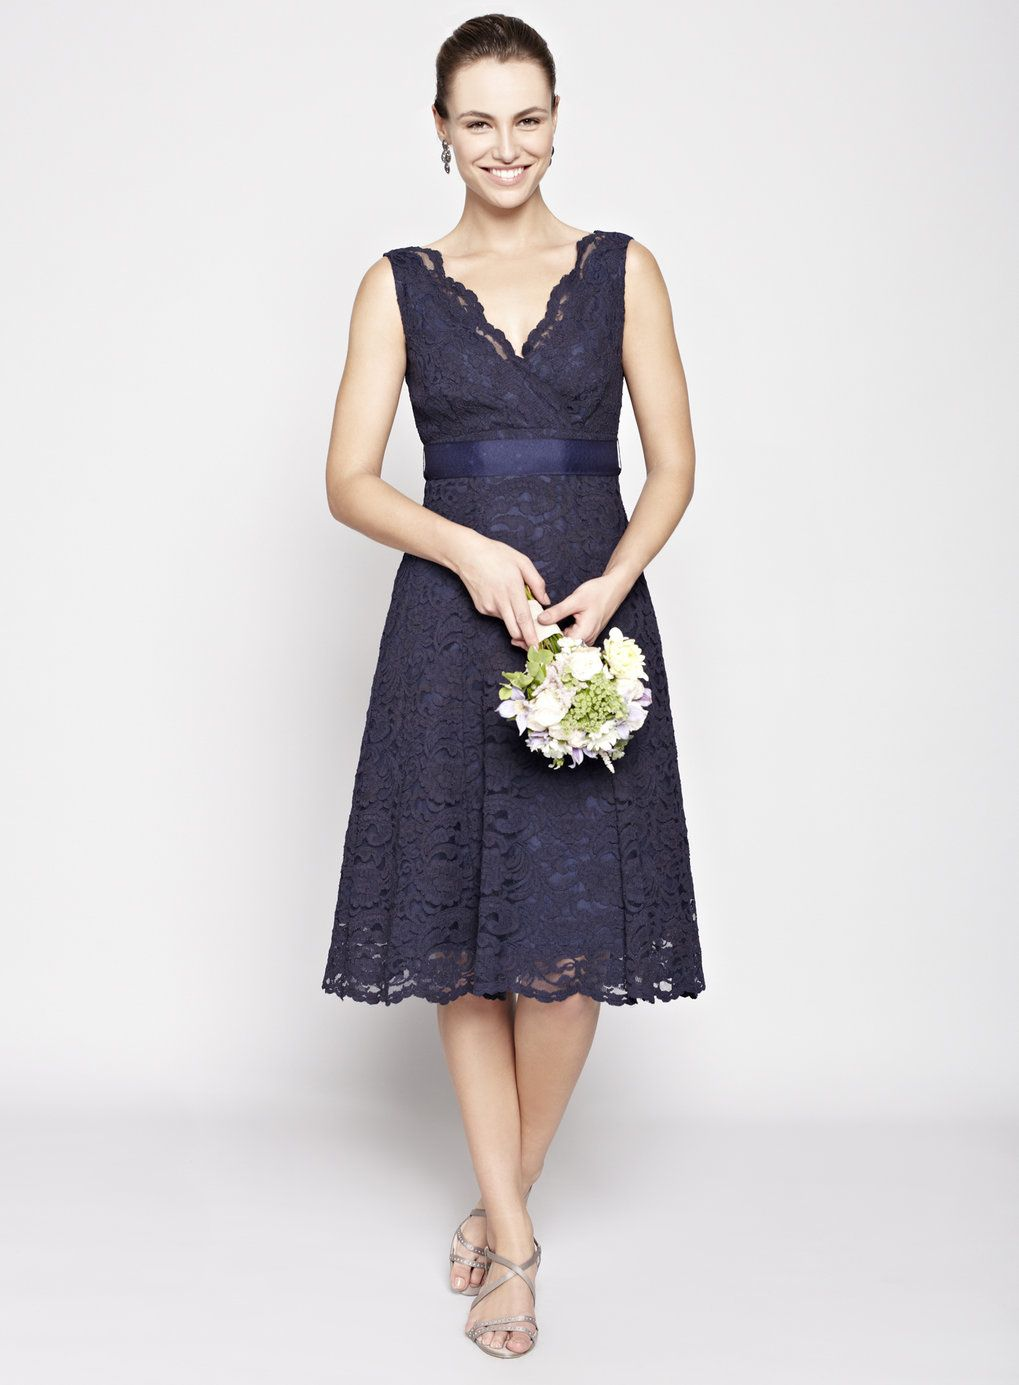 Plus size beach wedding guest dresses  bridesmaid dress navy lace short  Google Search  wedding and